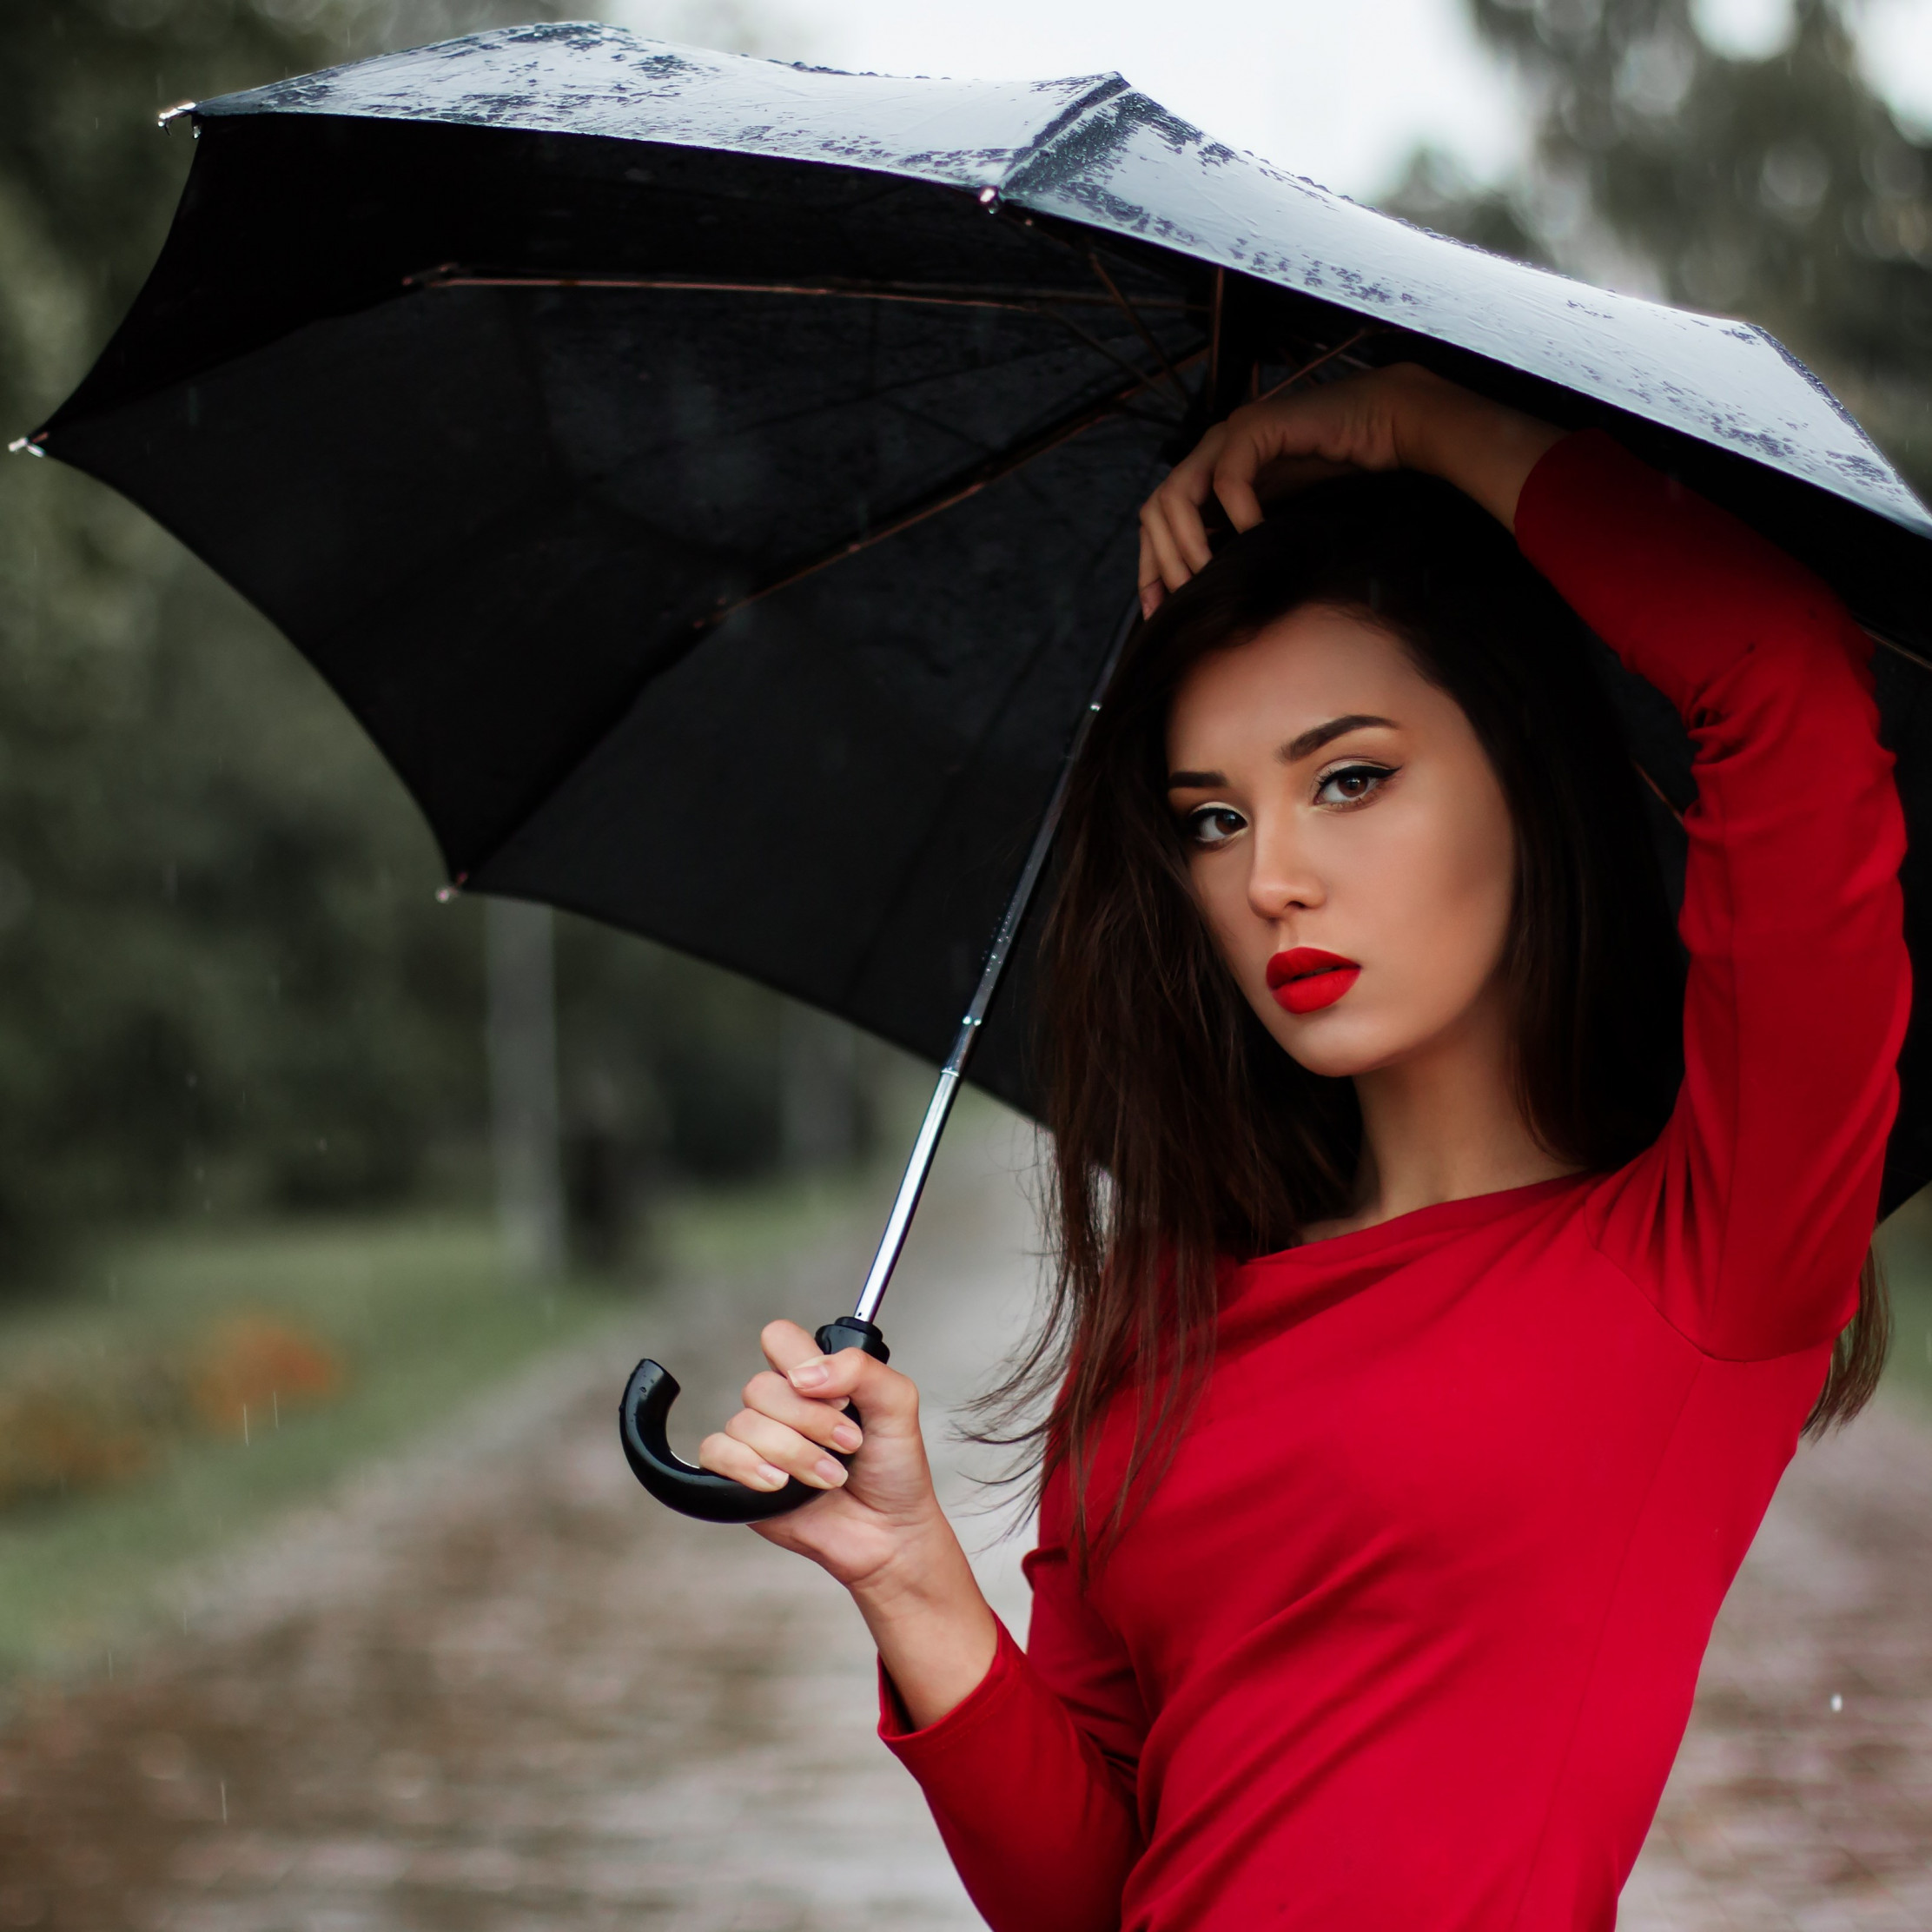 Beauitful girl in a rainy day wallpaper 2224x2224